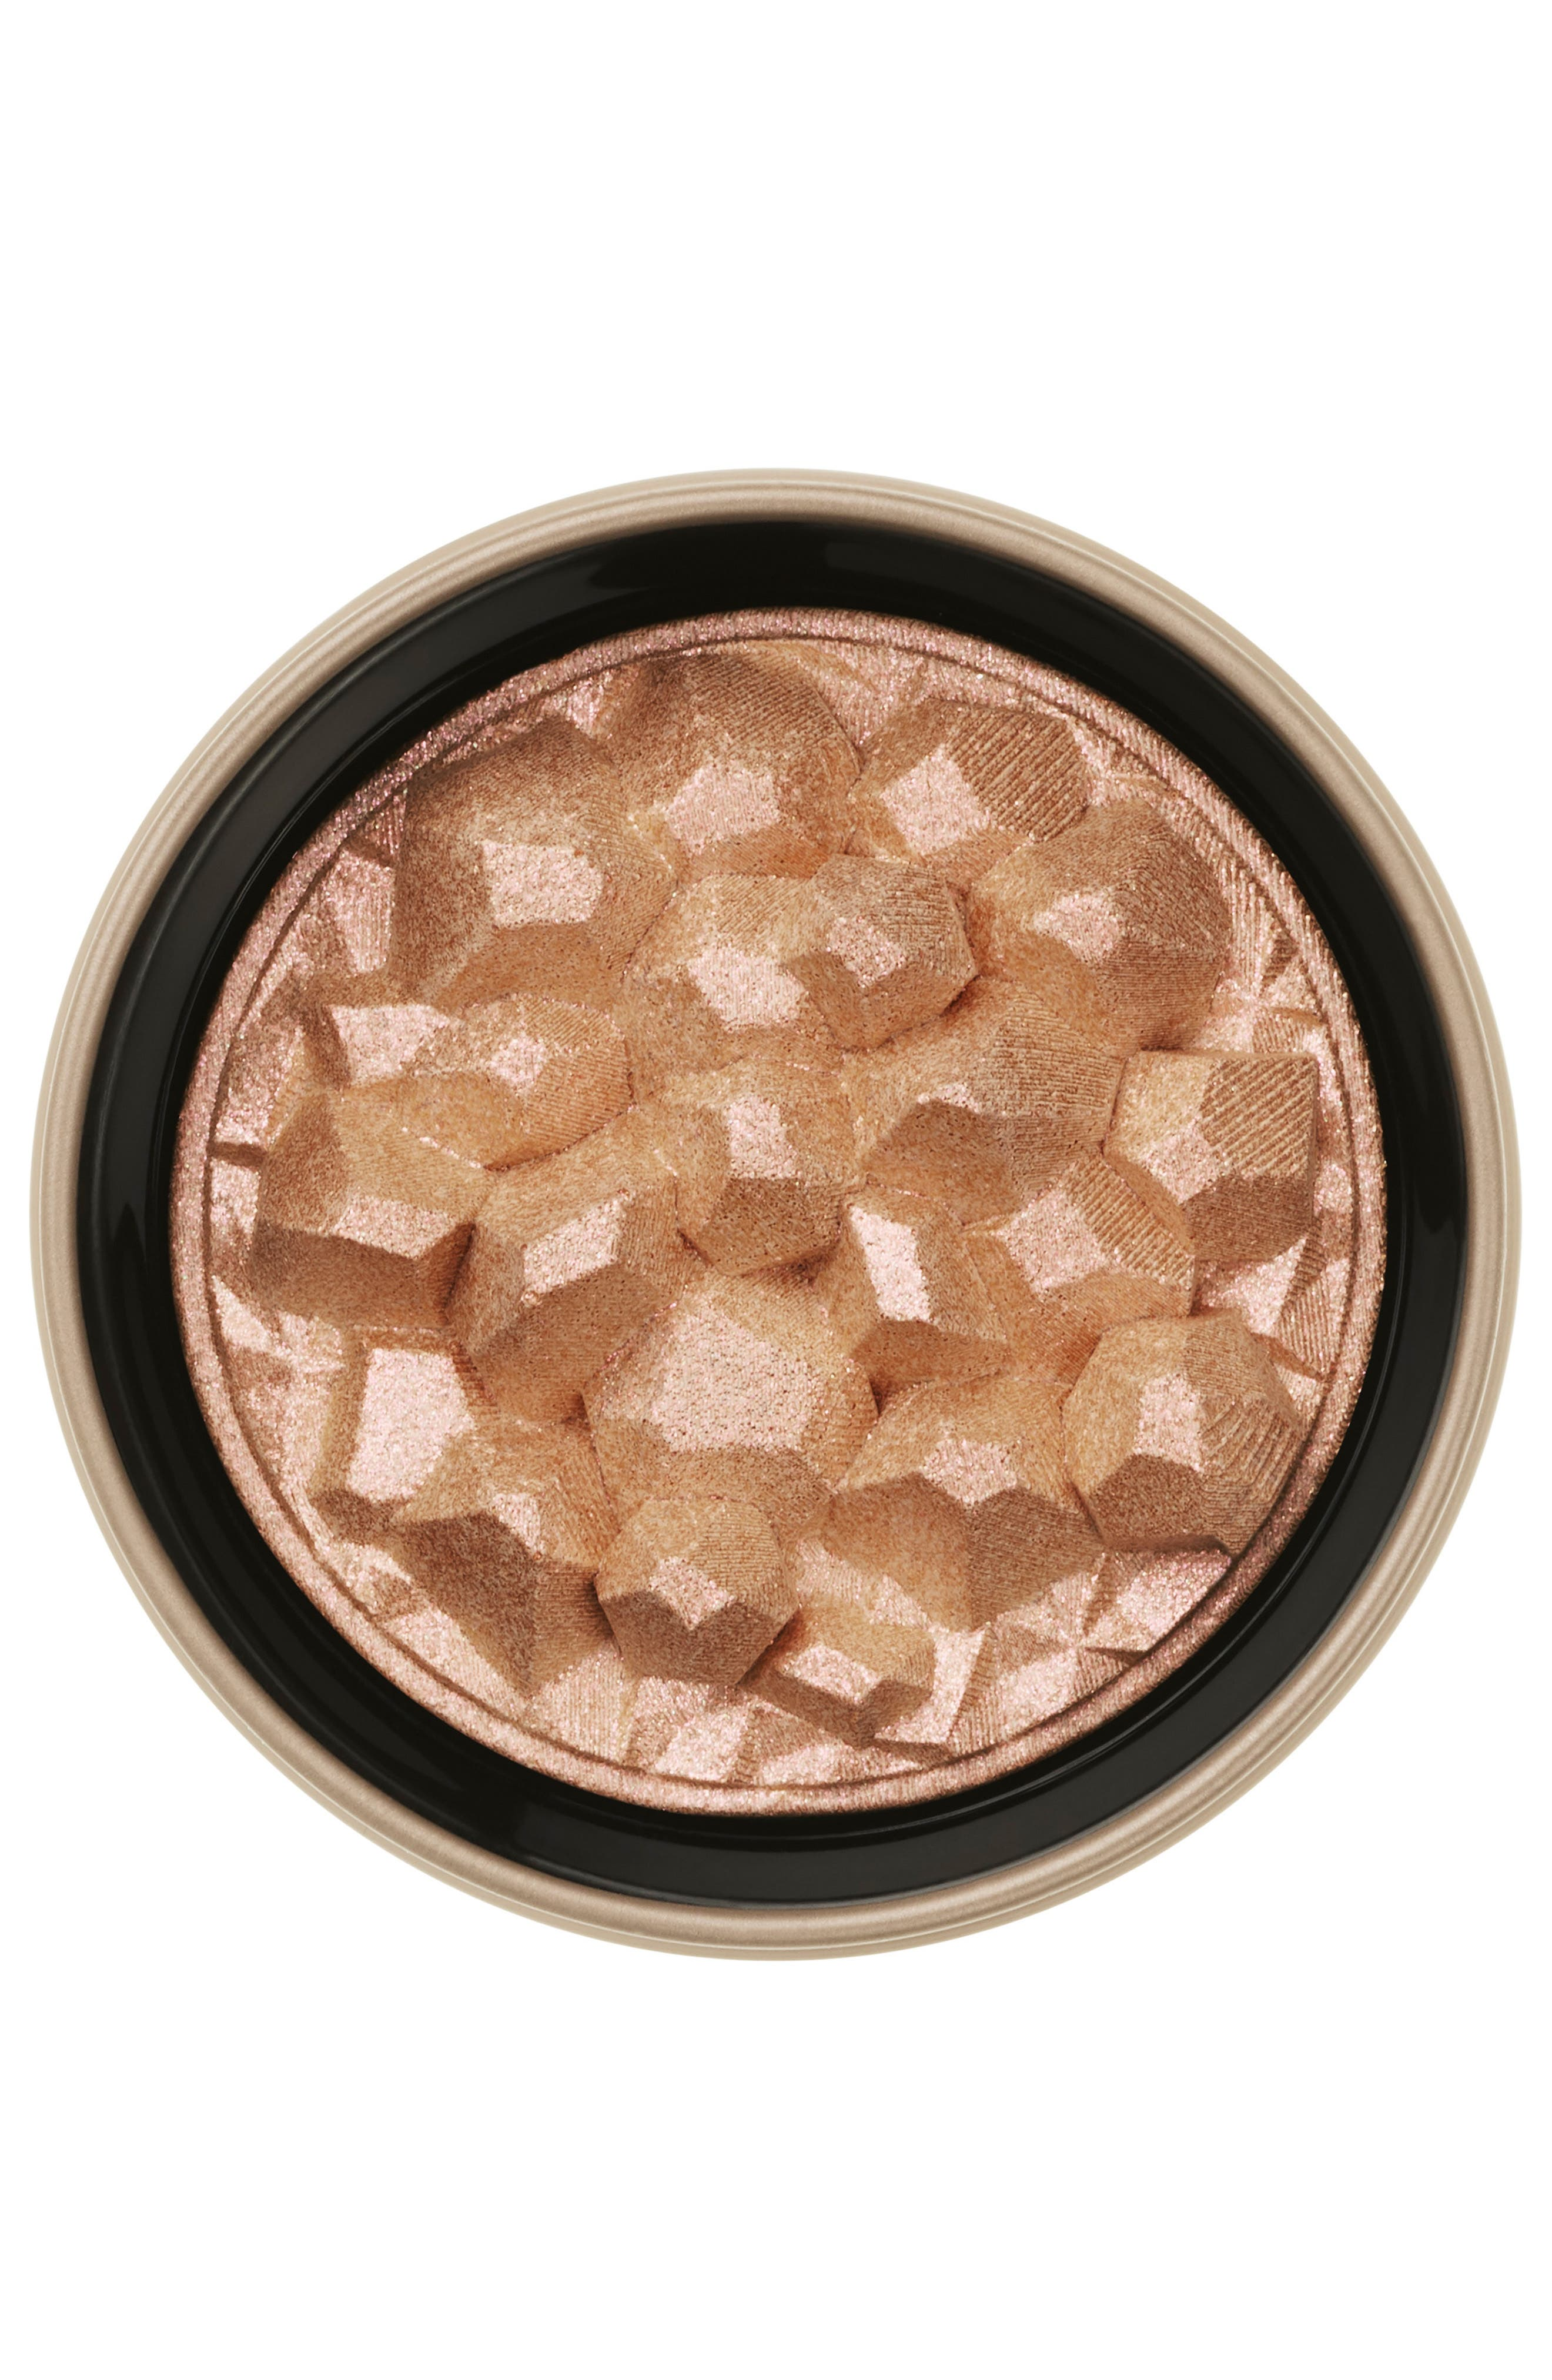 What it is: A limited-edition highlighter powder with a buildable rose-gold glow and a holographic sparkle to deliver a glowy finish to you look. How to use: Use a fluffy highlighting brush for all-over radiance or amp up your look by building up the highlighter to achieve maximum glow and luminosity. Use a more tapered, angled brush for precise spotlighting. Style Name: Urban Decay Stoned Vibes Highlighter (Limited Edition). Style Number: